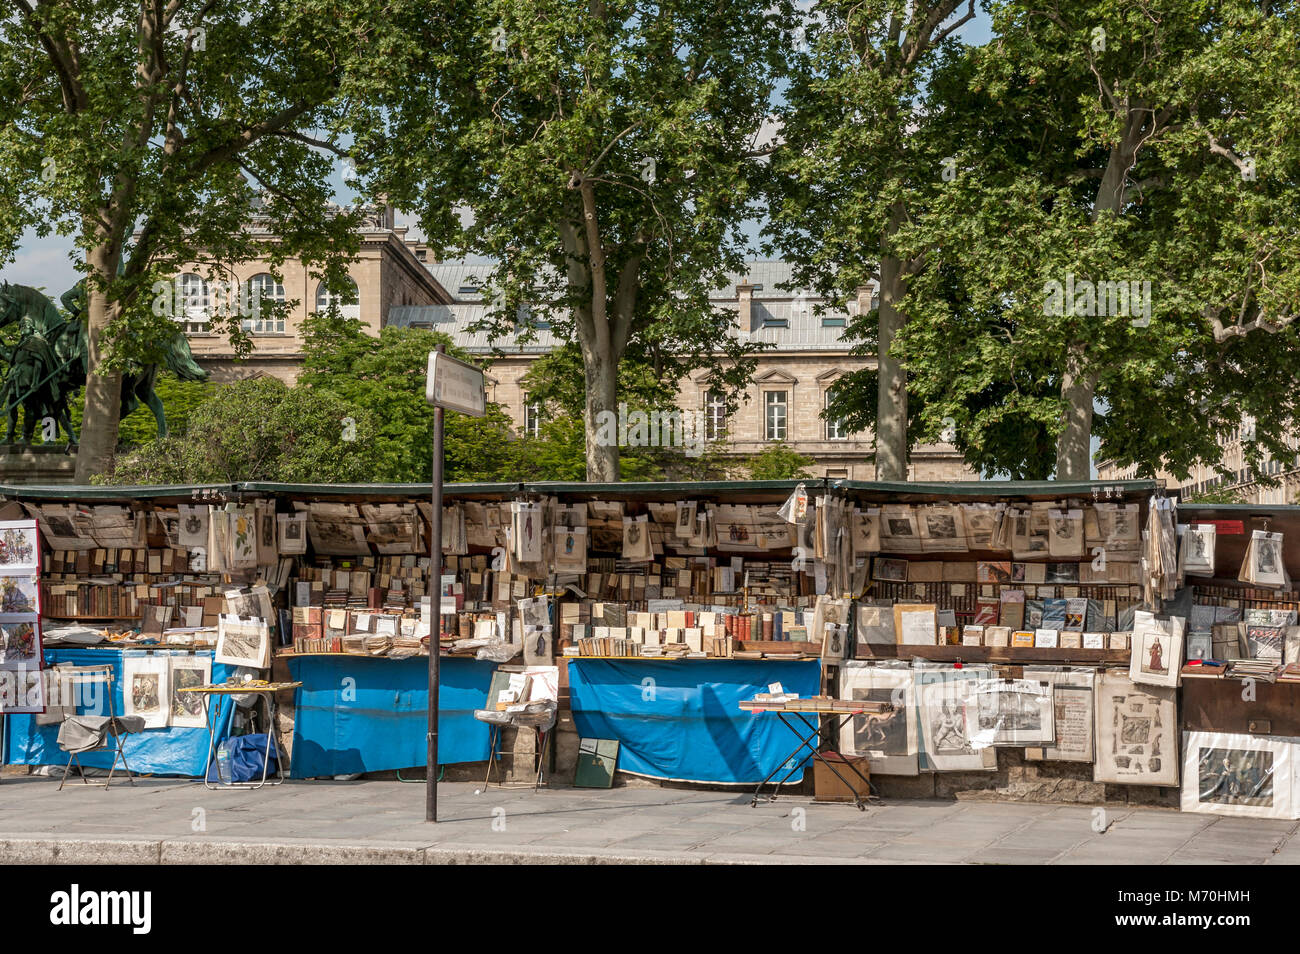 PARIS, FRANCE:  Outdoor Booksellers and Art Dealer along on the Quai  de Montebello on the Banks of the River Seine - Stock Image